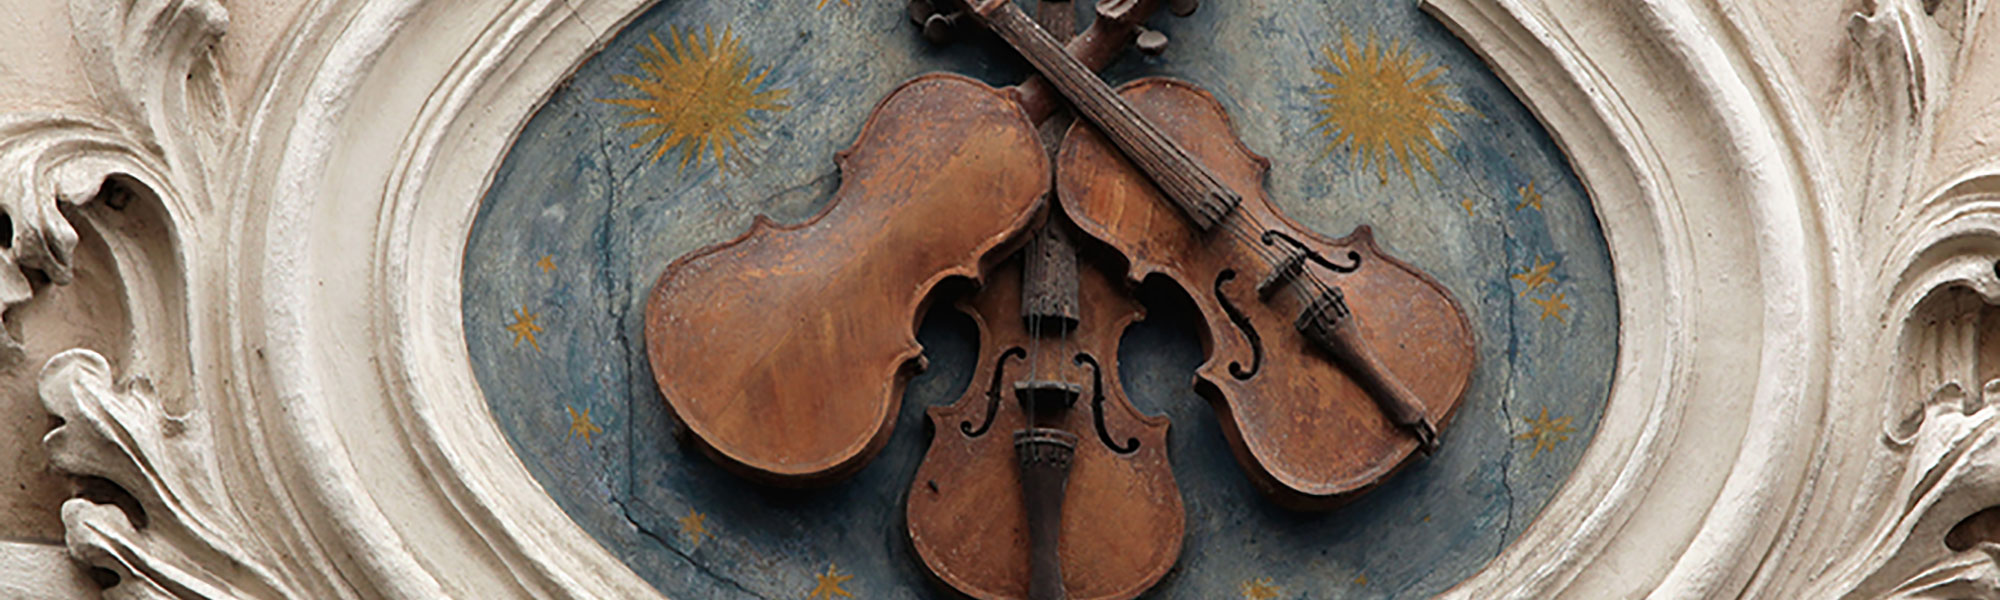 Bohemian Beauties Large Banner violins on a wall 2000 x600